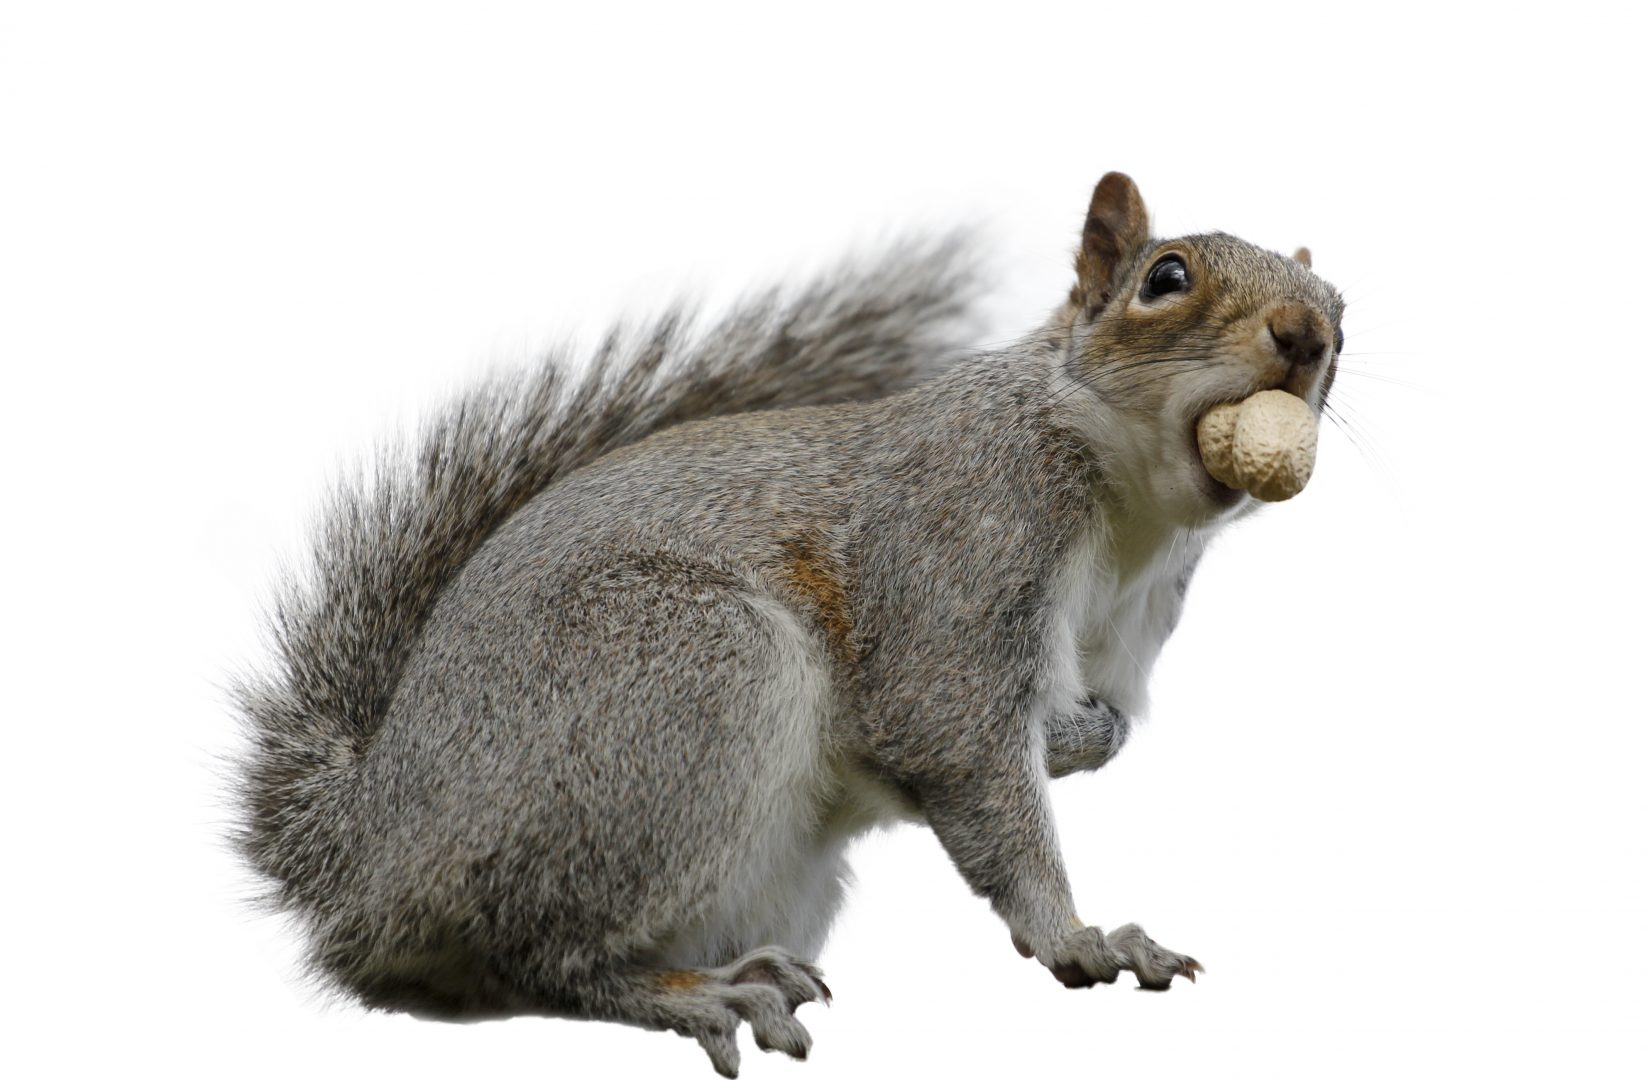 Should Squirrels Be Culled To Help Protect Trees First